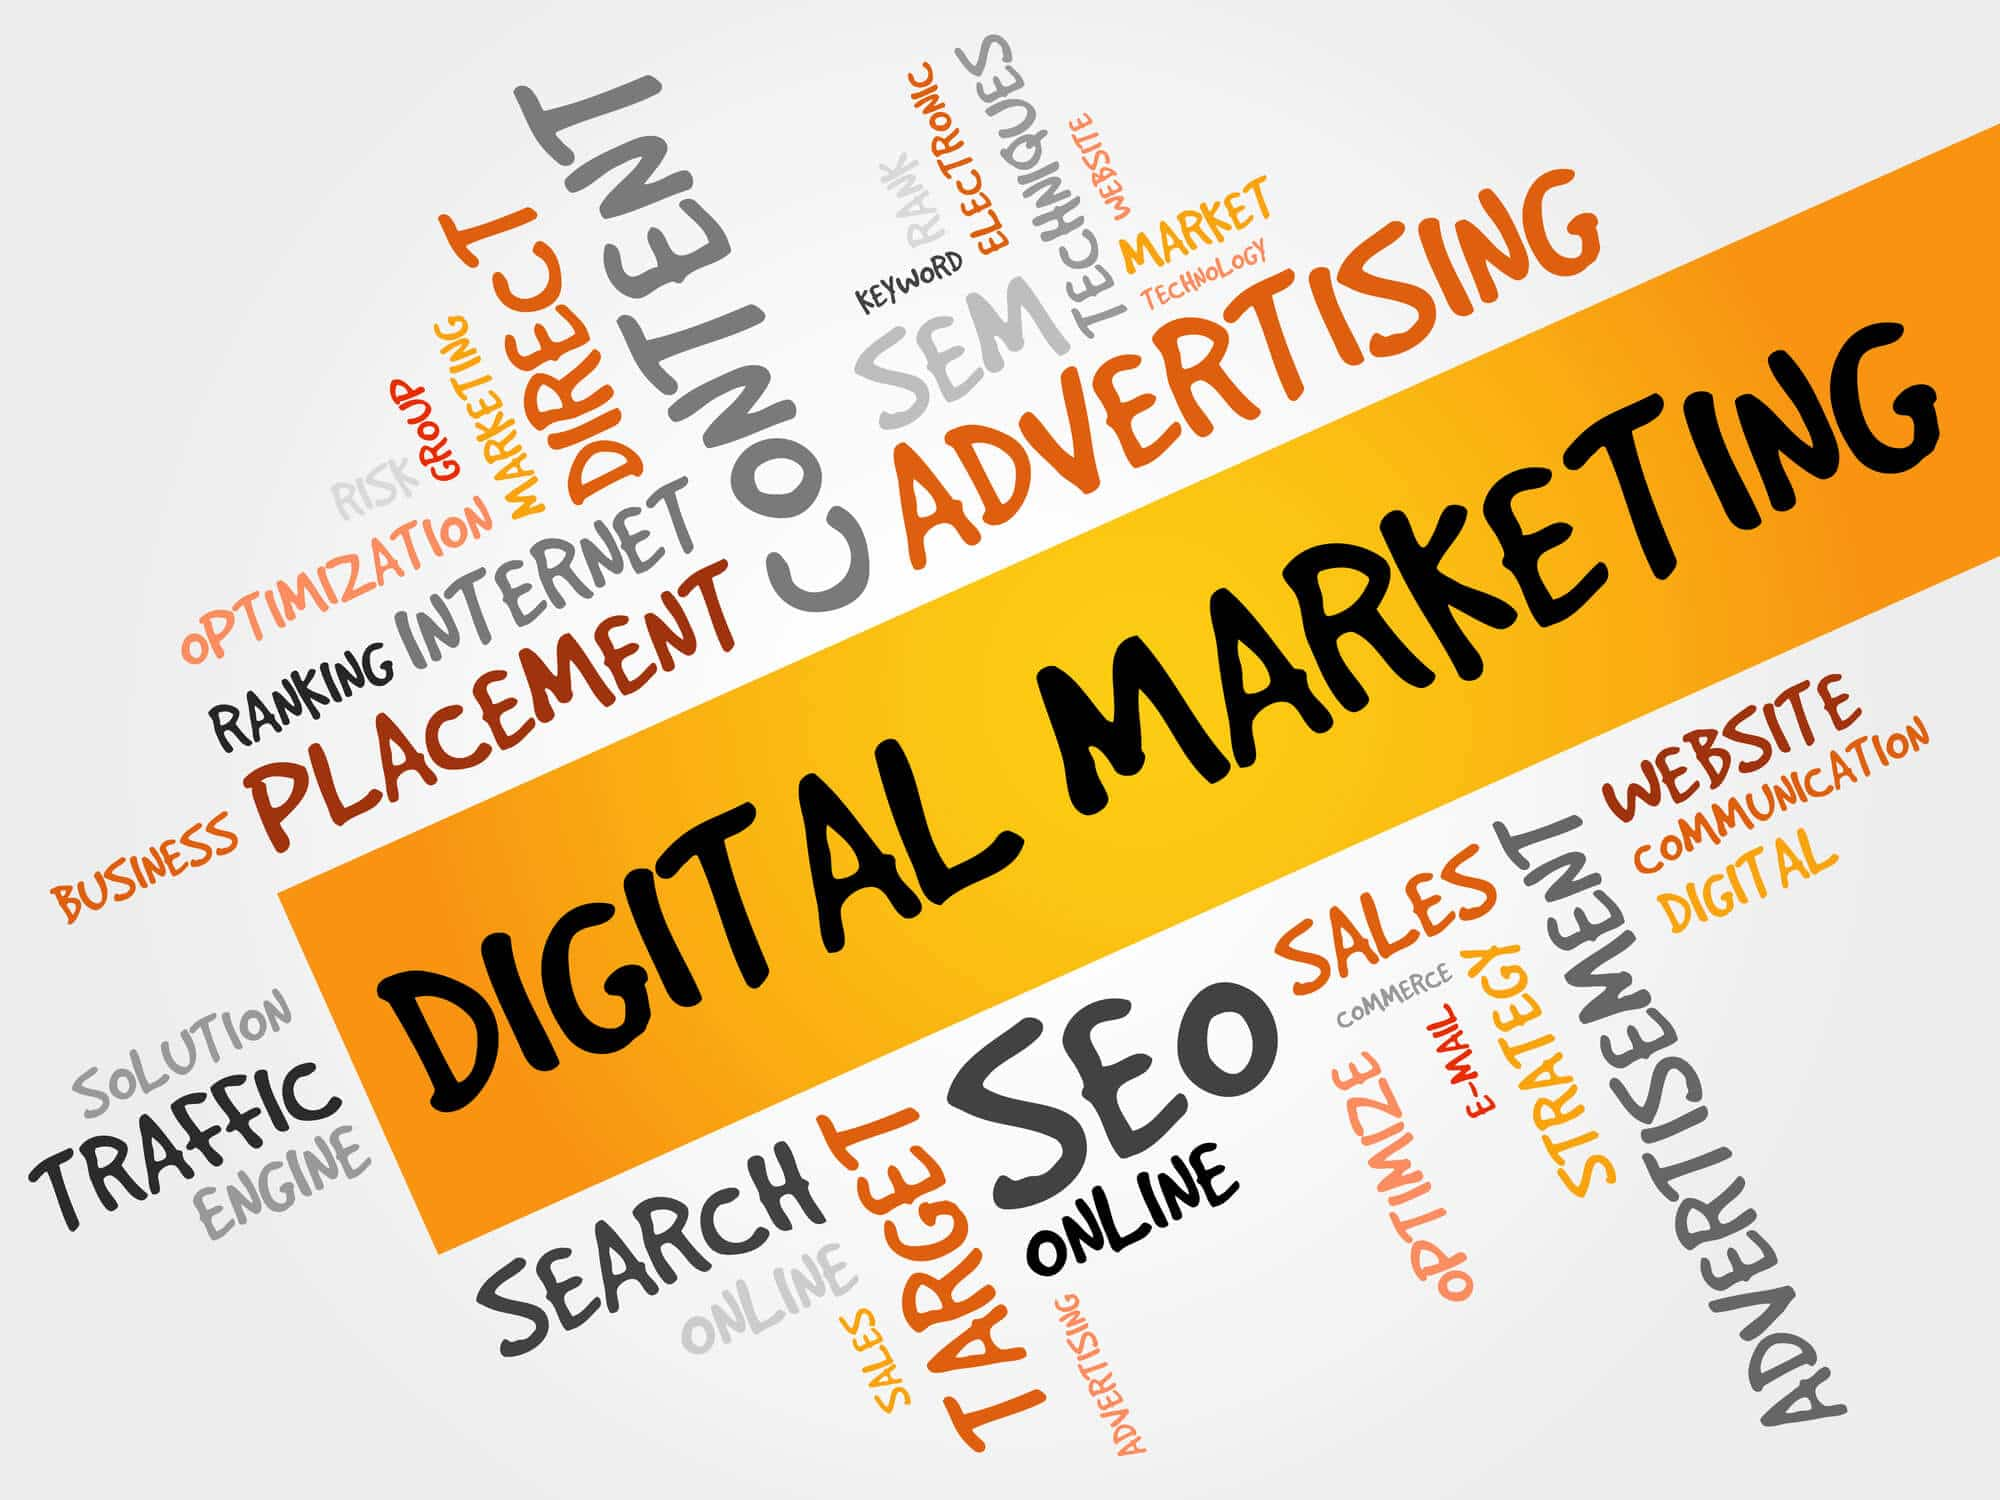 Digital Marketing & Web Design Agency in Colorado